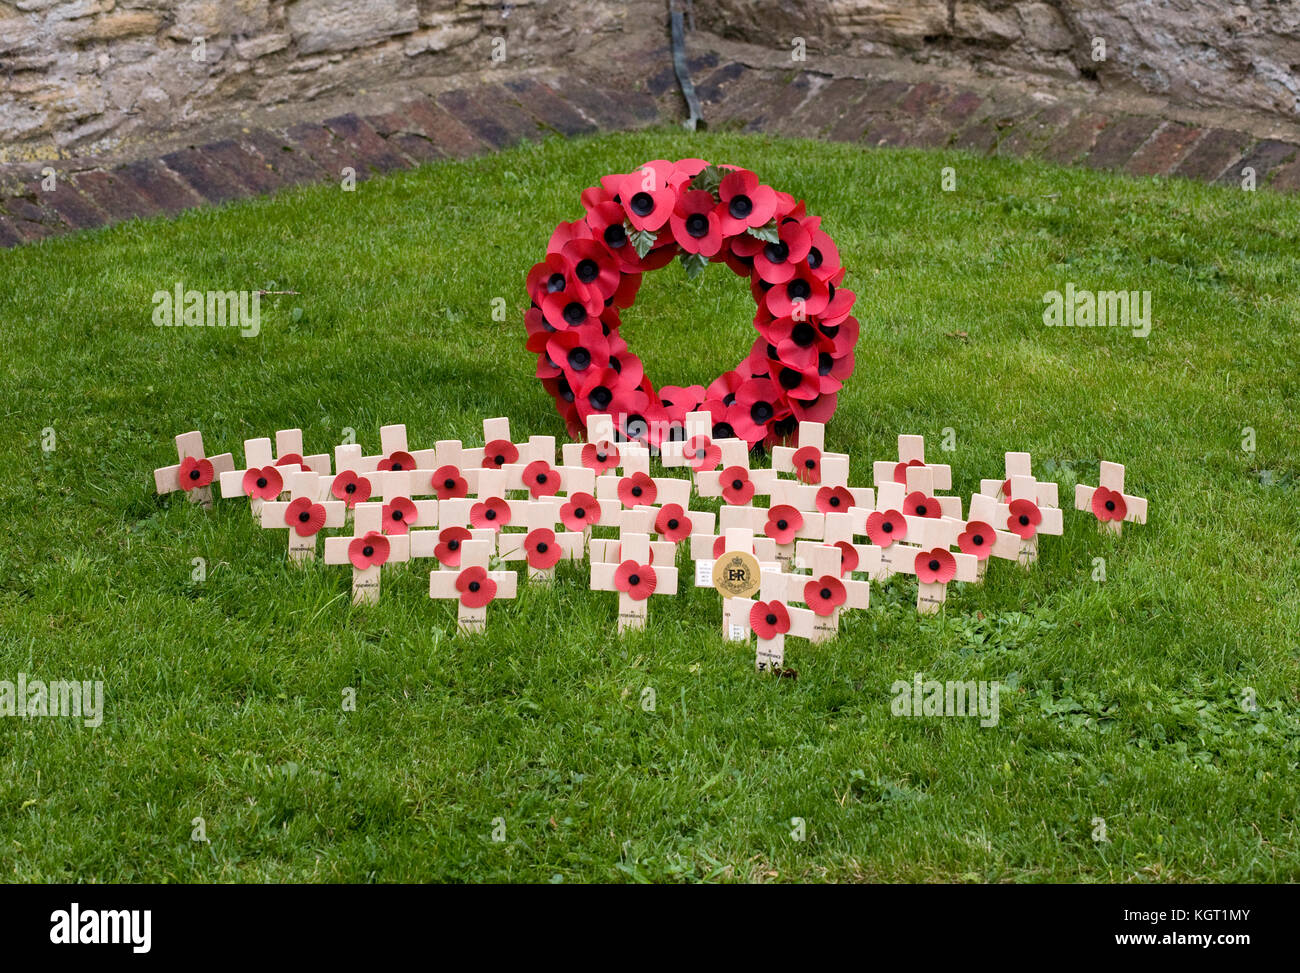 Remembrance Day Poppy Wreath and crosses in a town churchyard. - Stock Image